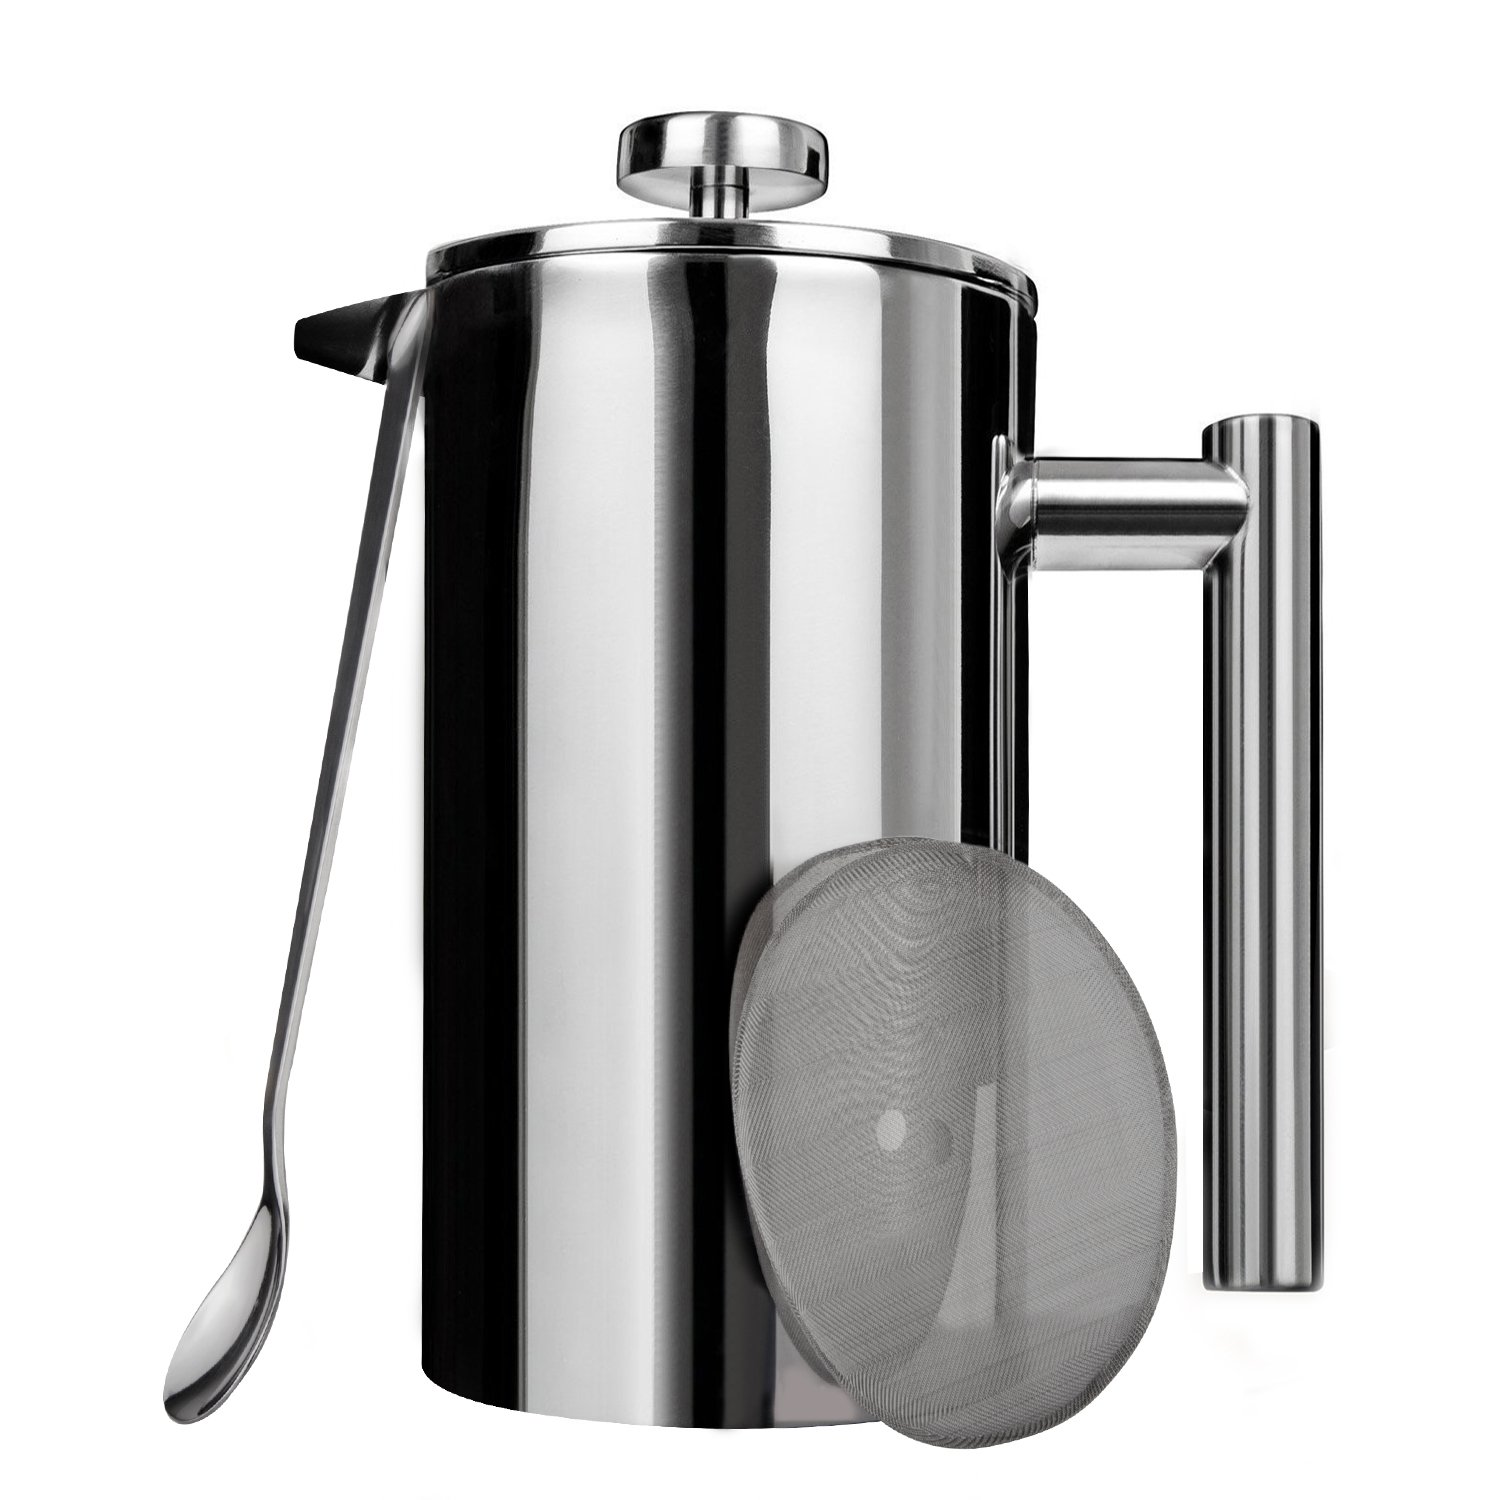 AMOVEE French Press Coffee Maker Tea Maker, 304 Stainless Steel Double Insulation, with Mixing Spoon and Bonus Screen (1 Liter, 34 oz)